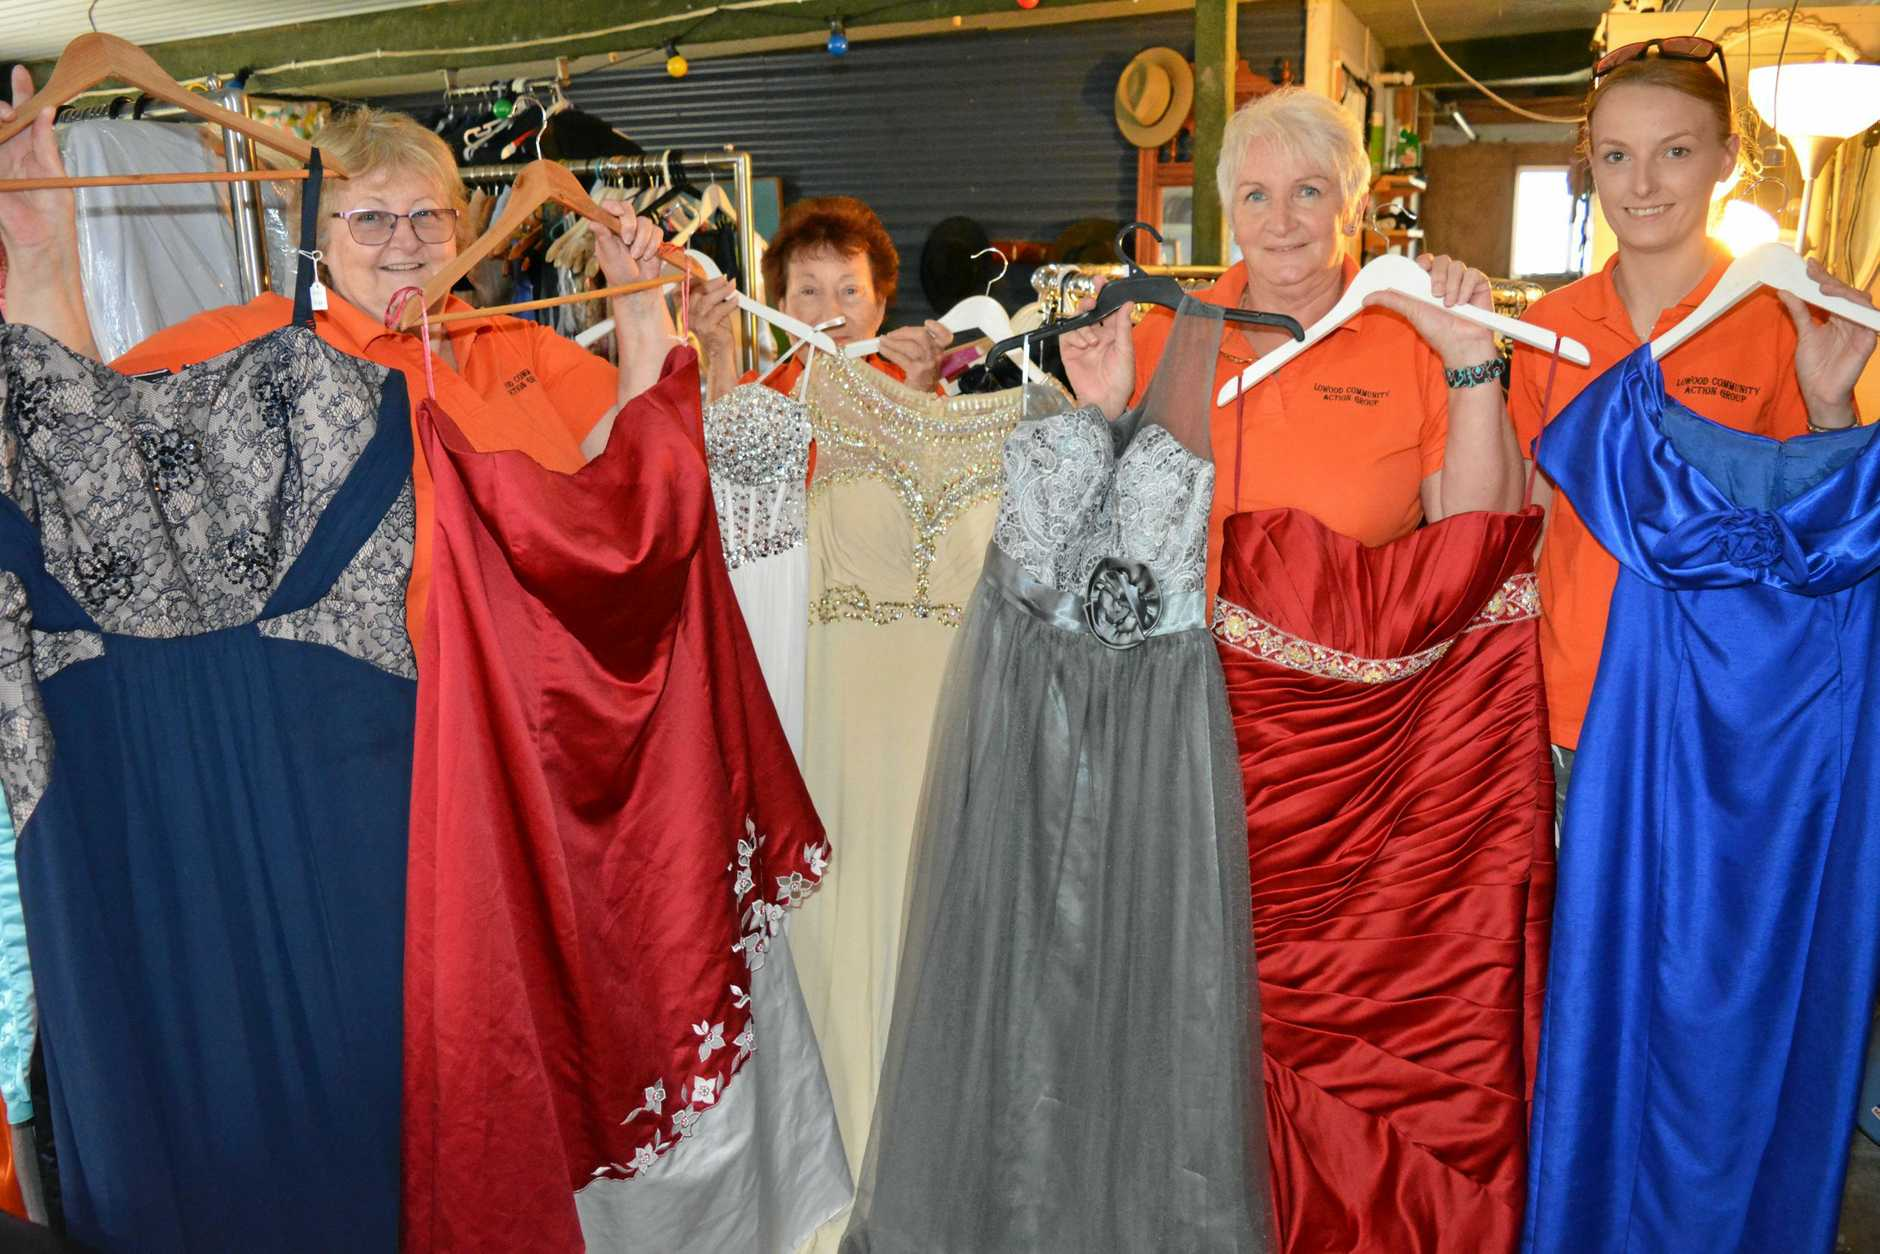 Pauline, Kaitlin, Sue and Joy from the Lowood Community Action Group show off some of the formal wear donations.